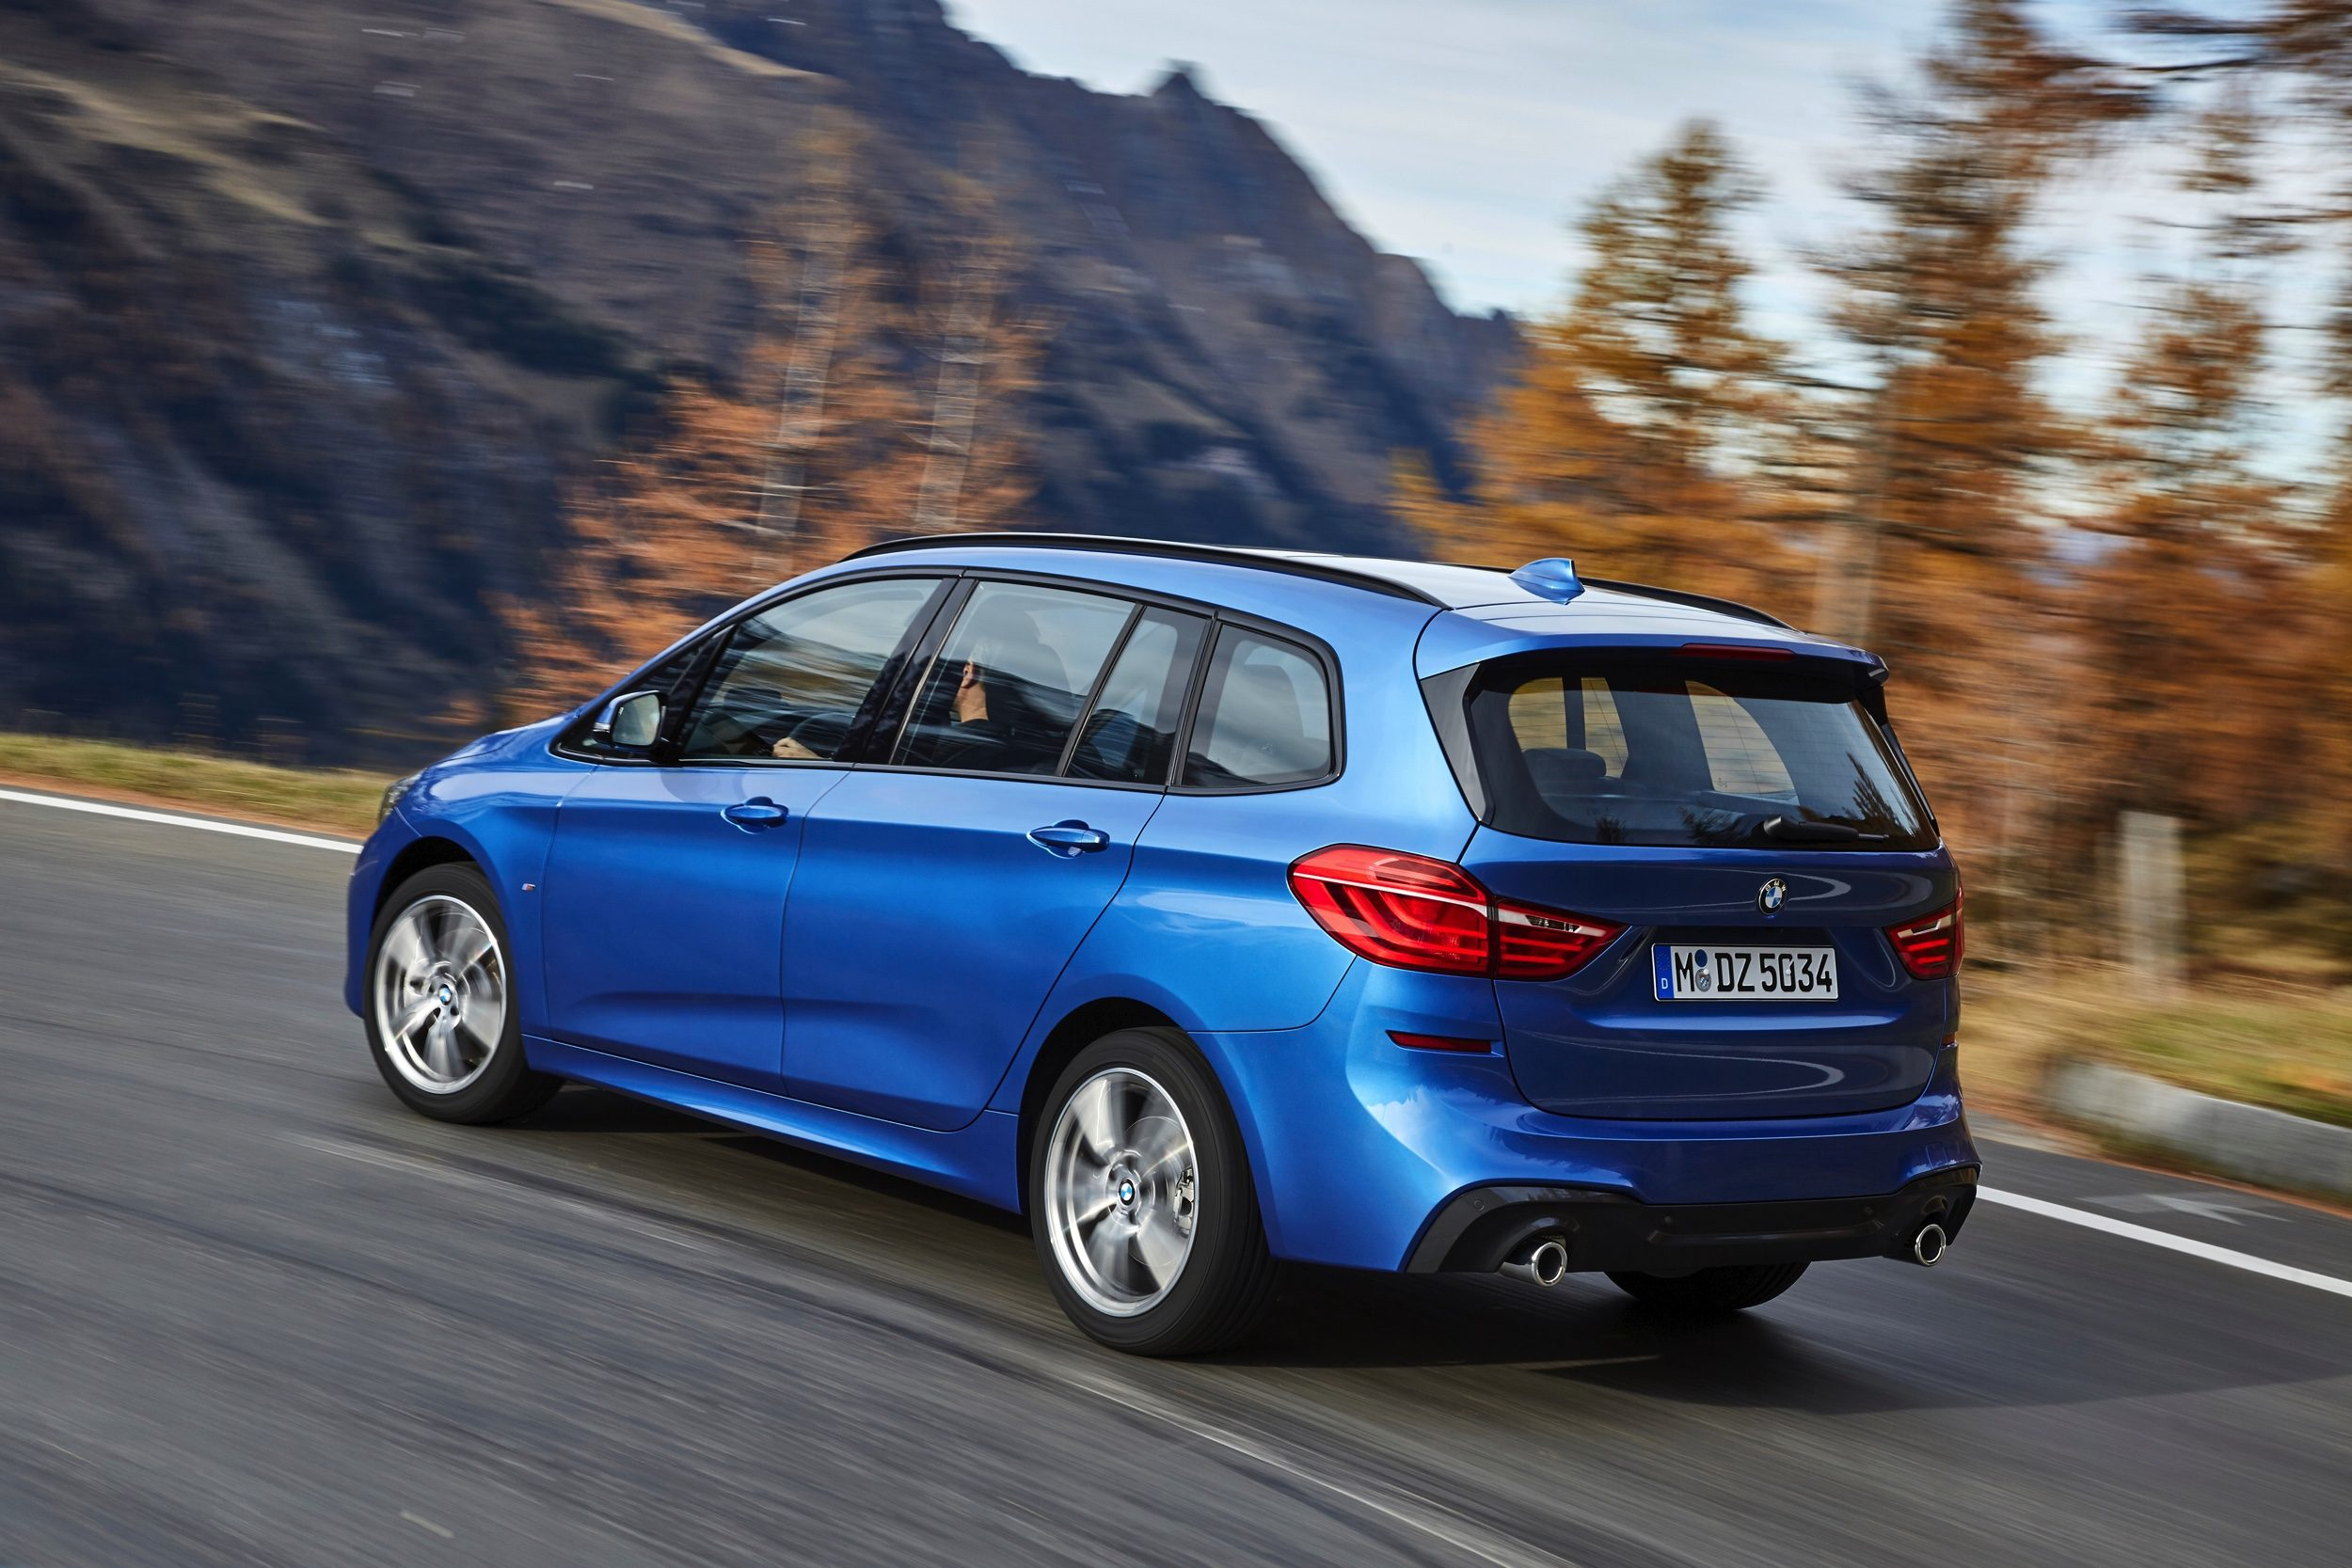 Bmw Serie Active Tourer : facelift voor bmw 2 serie active tourer en gran tourer ~ New.letsfixerimages.club Revue des Voitures